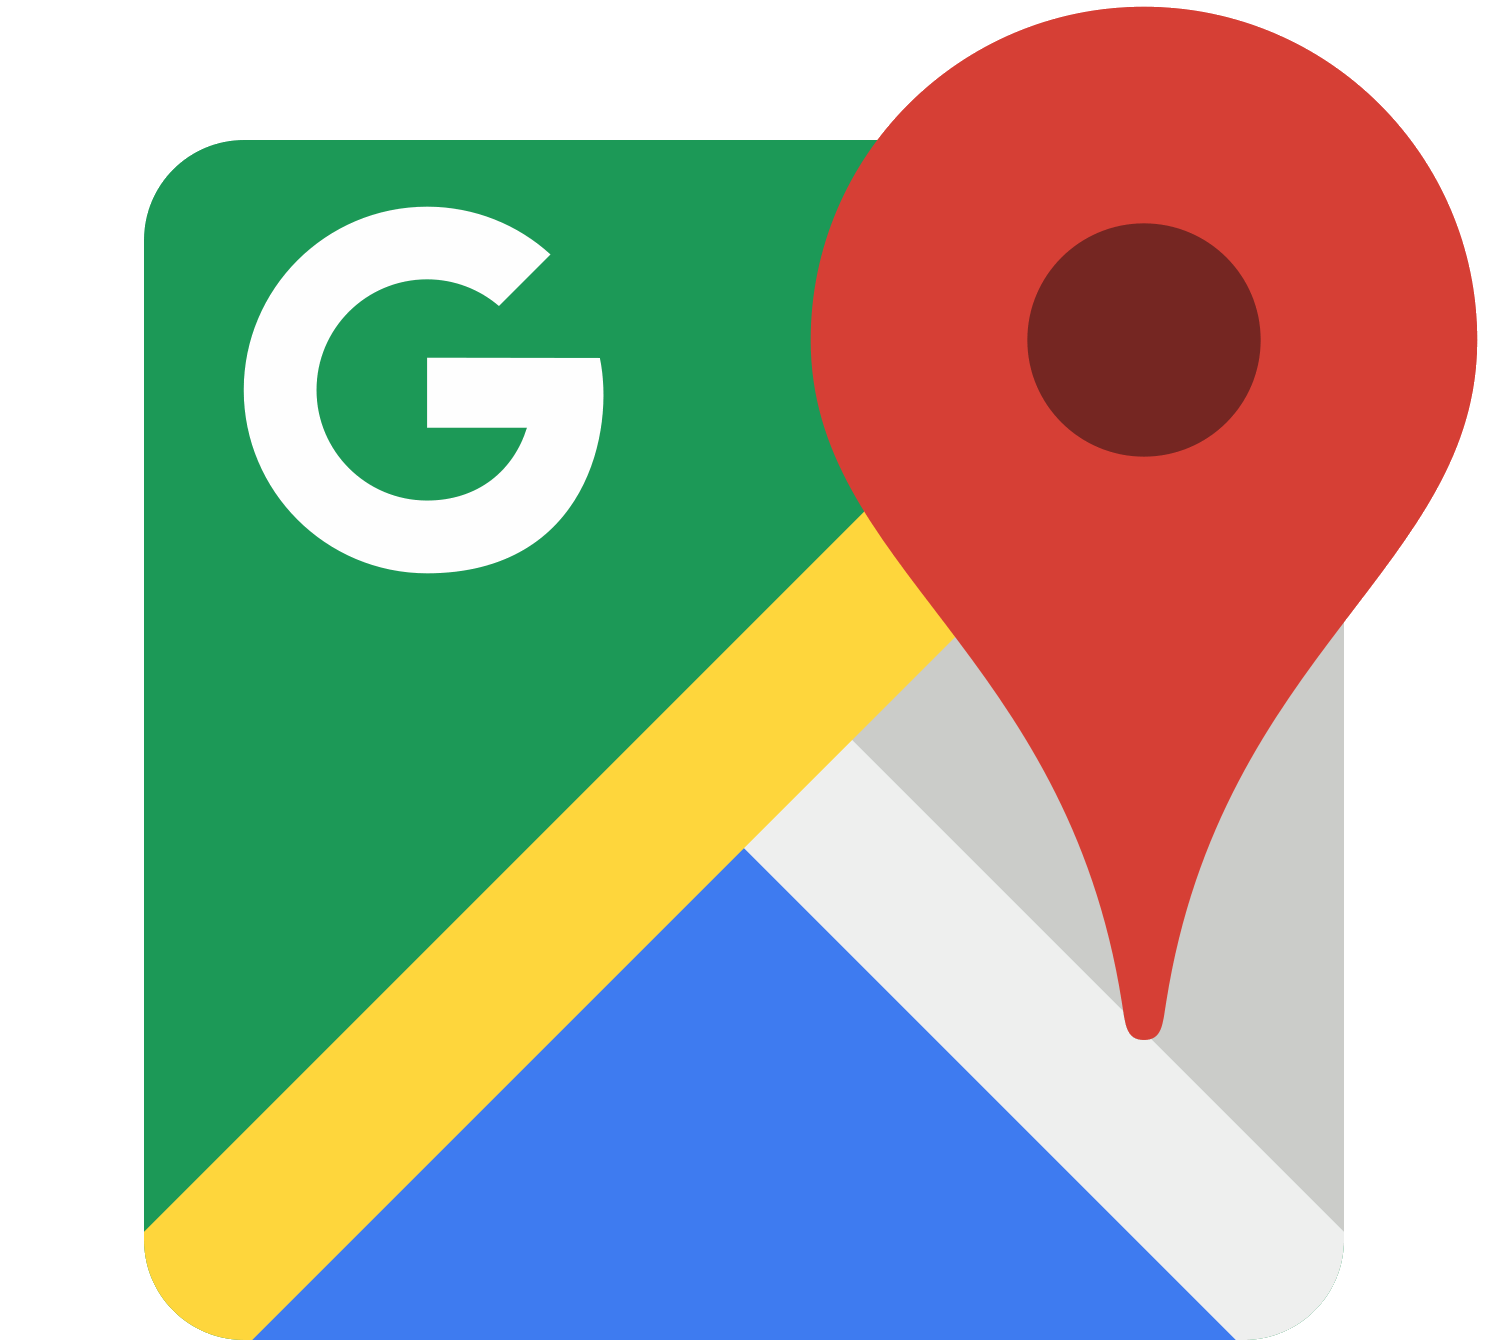 Claai Sabaai Massage Google maps